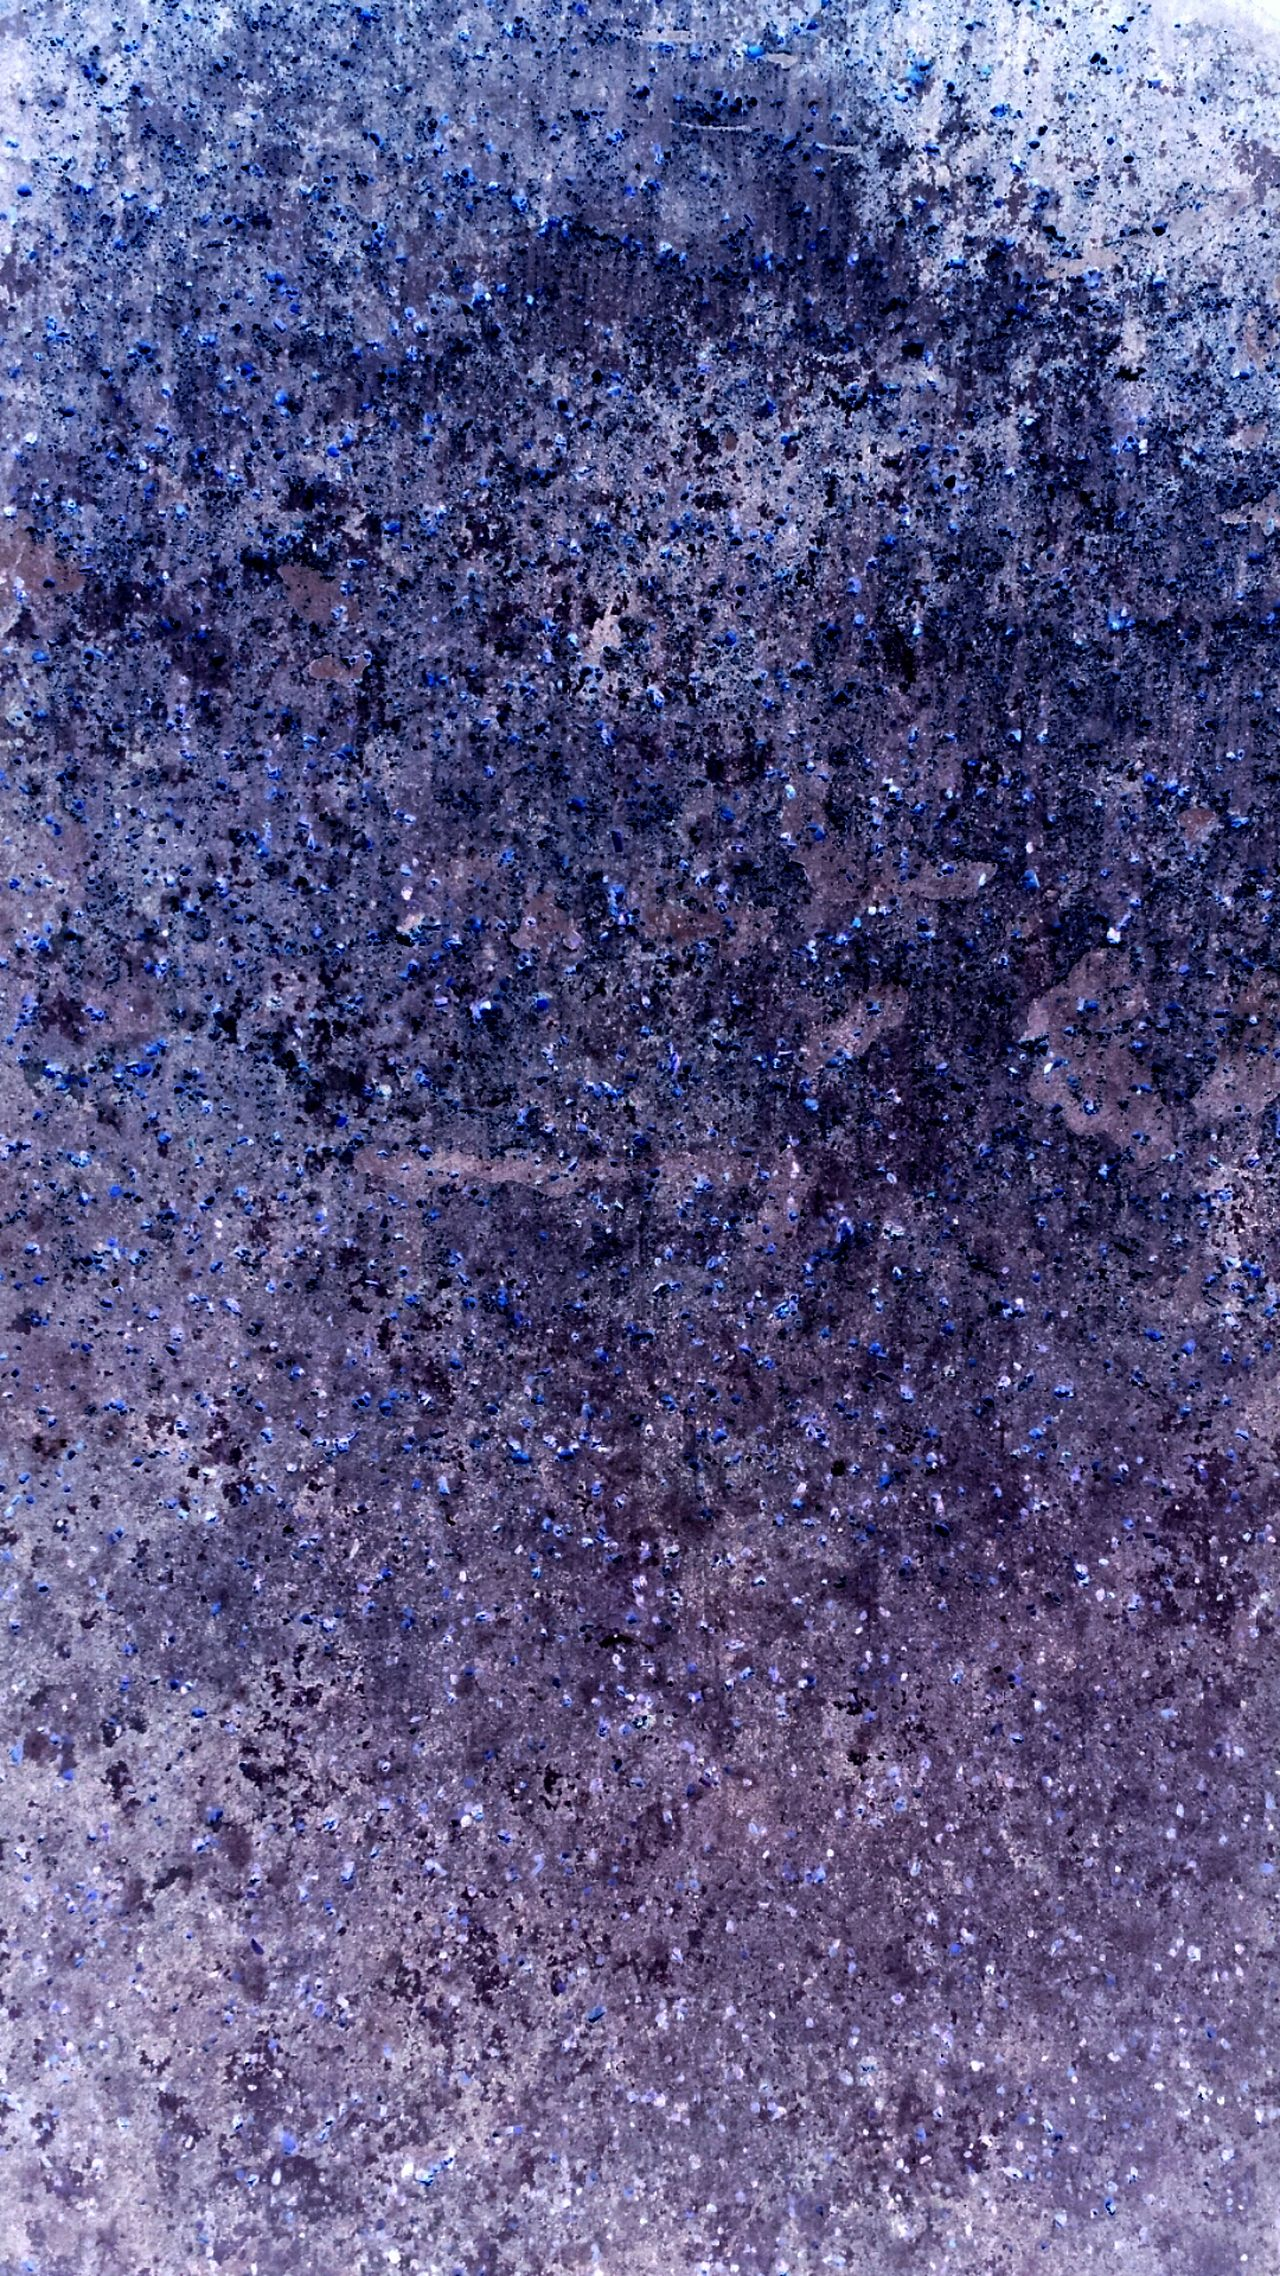 Backgrounds Blue Abstract Purple Full Frame Textured  No People Close-up Outdoors Day Astronomy Creativity California Dreaming Metaphorical Photography Beauty In Nature Star - Space Freshness Abstract Expressionism Comet Abstract Photography Streaks Of Light Shadows & Lights Asphalt High Angle View Globular Star Cluster